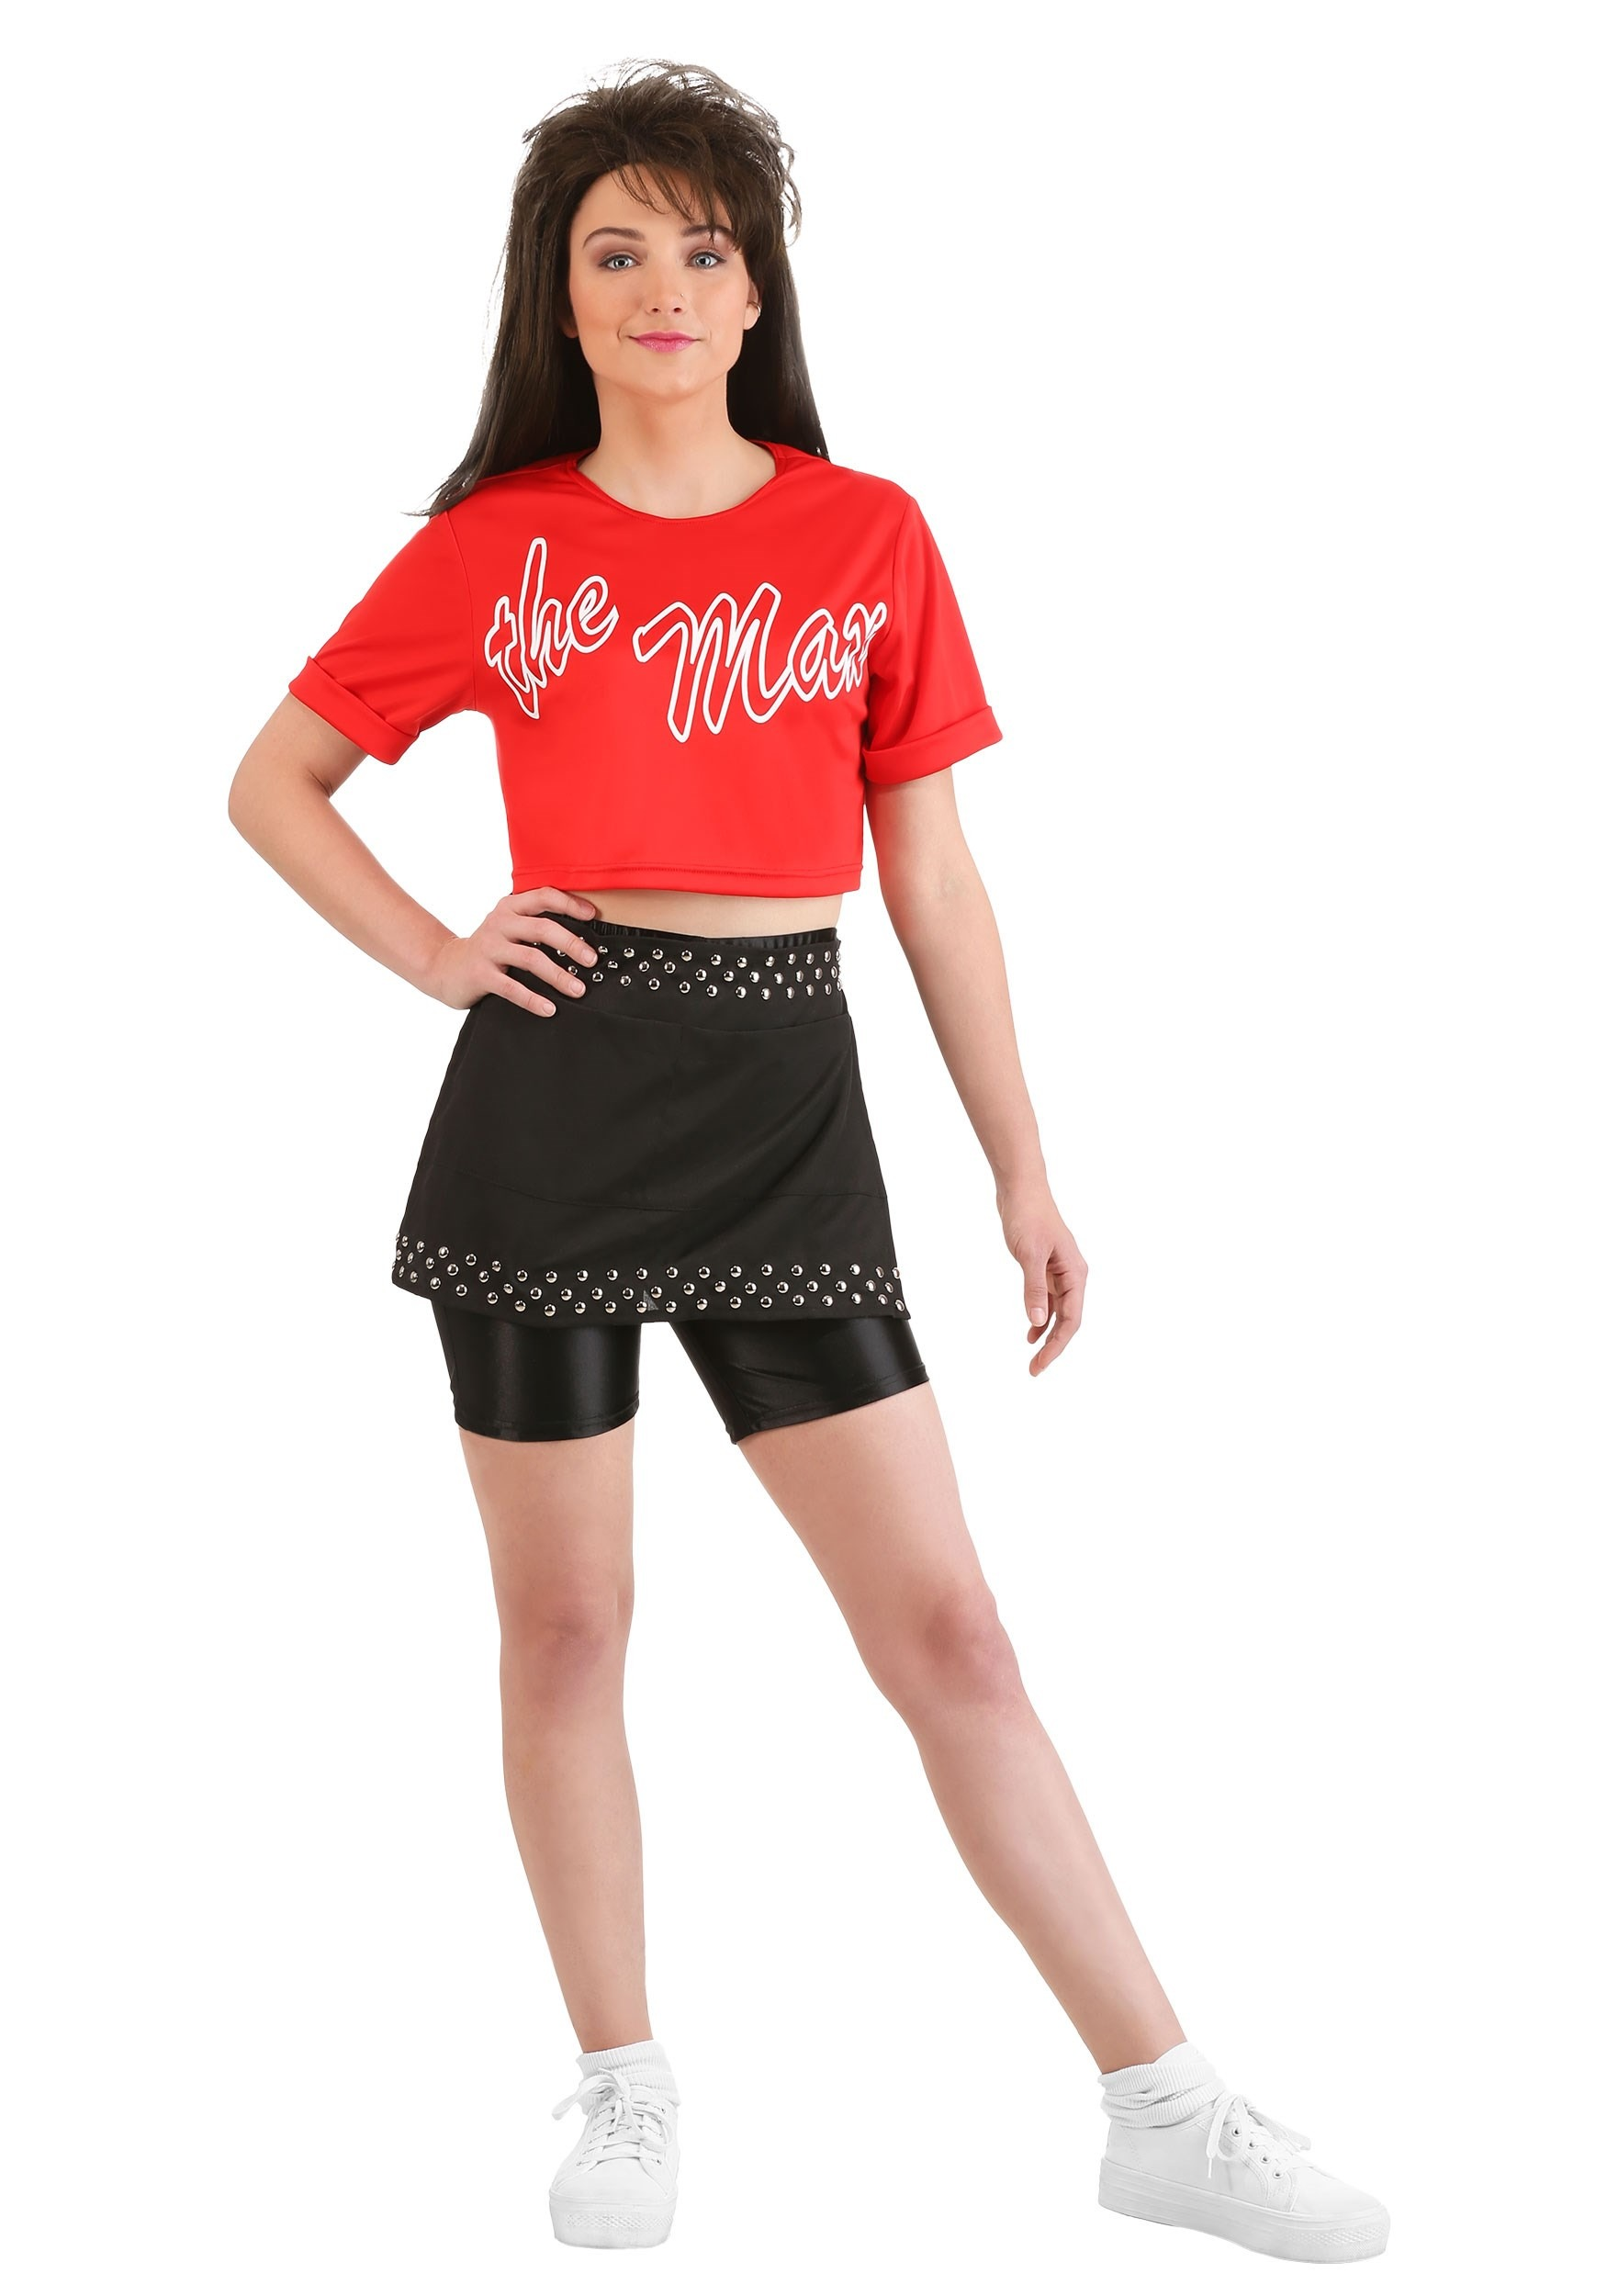 Saved by the Bell Kelly Kapowski Costume for Women